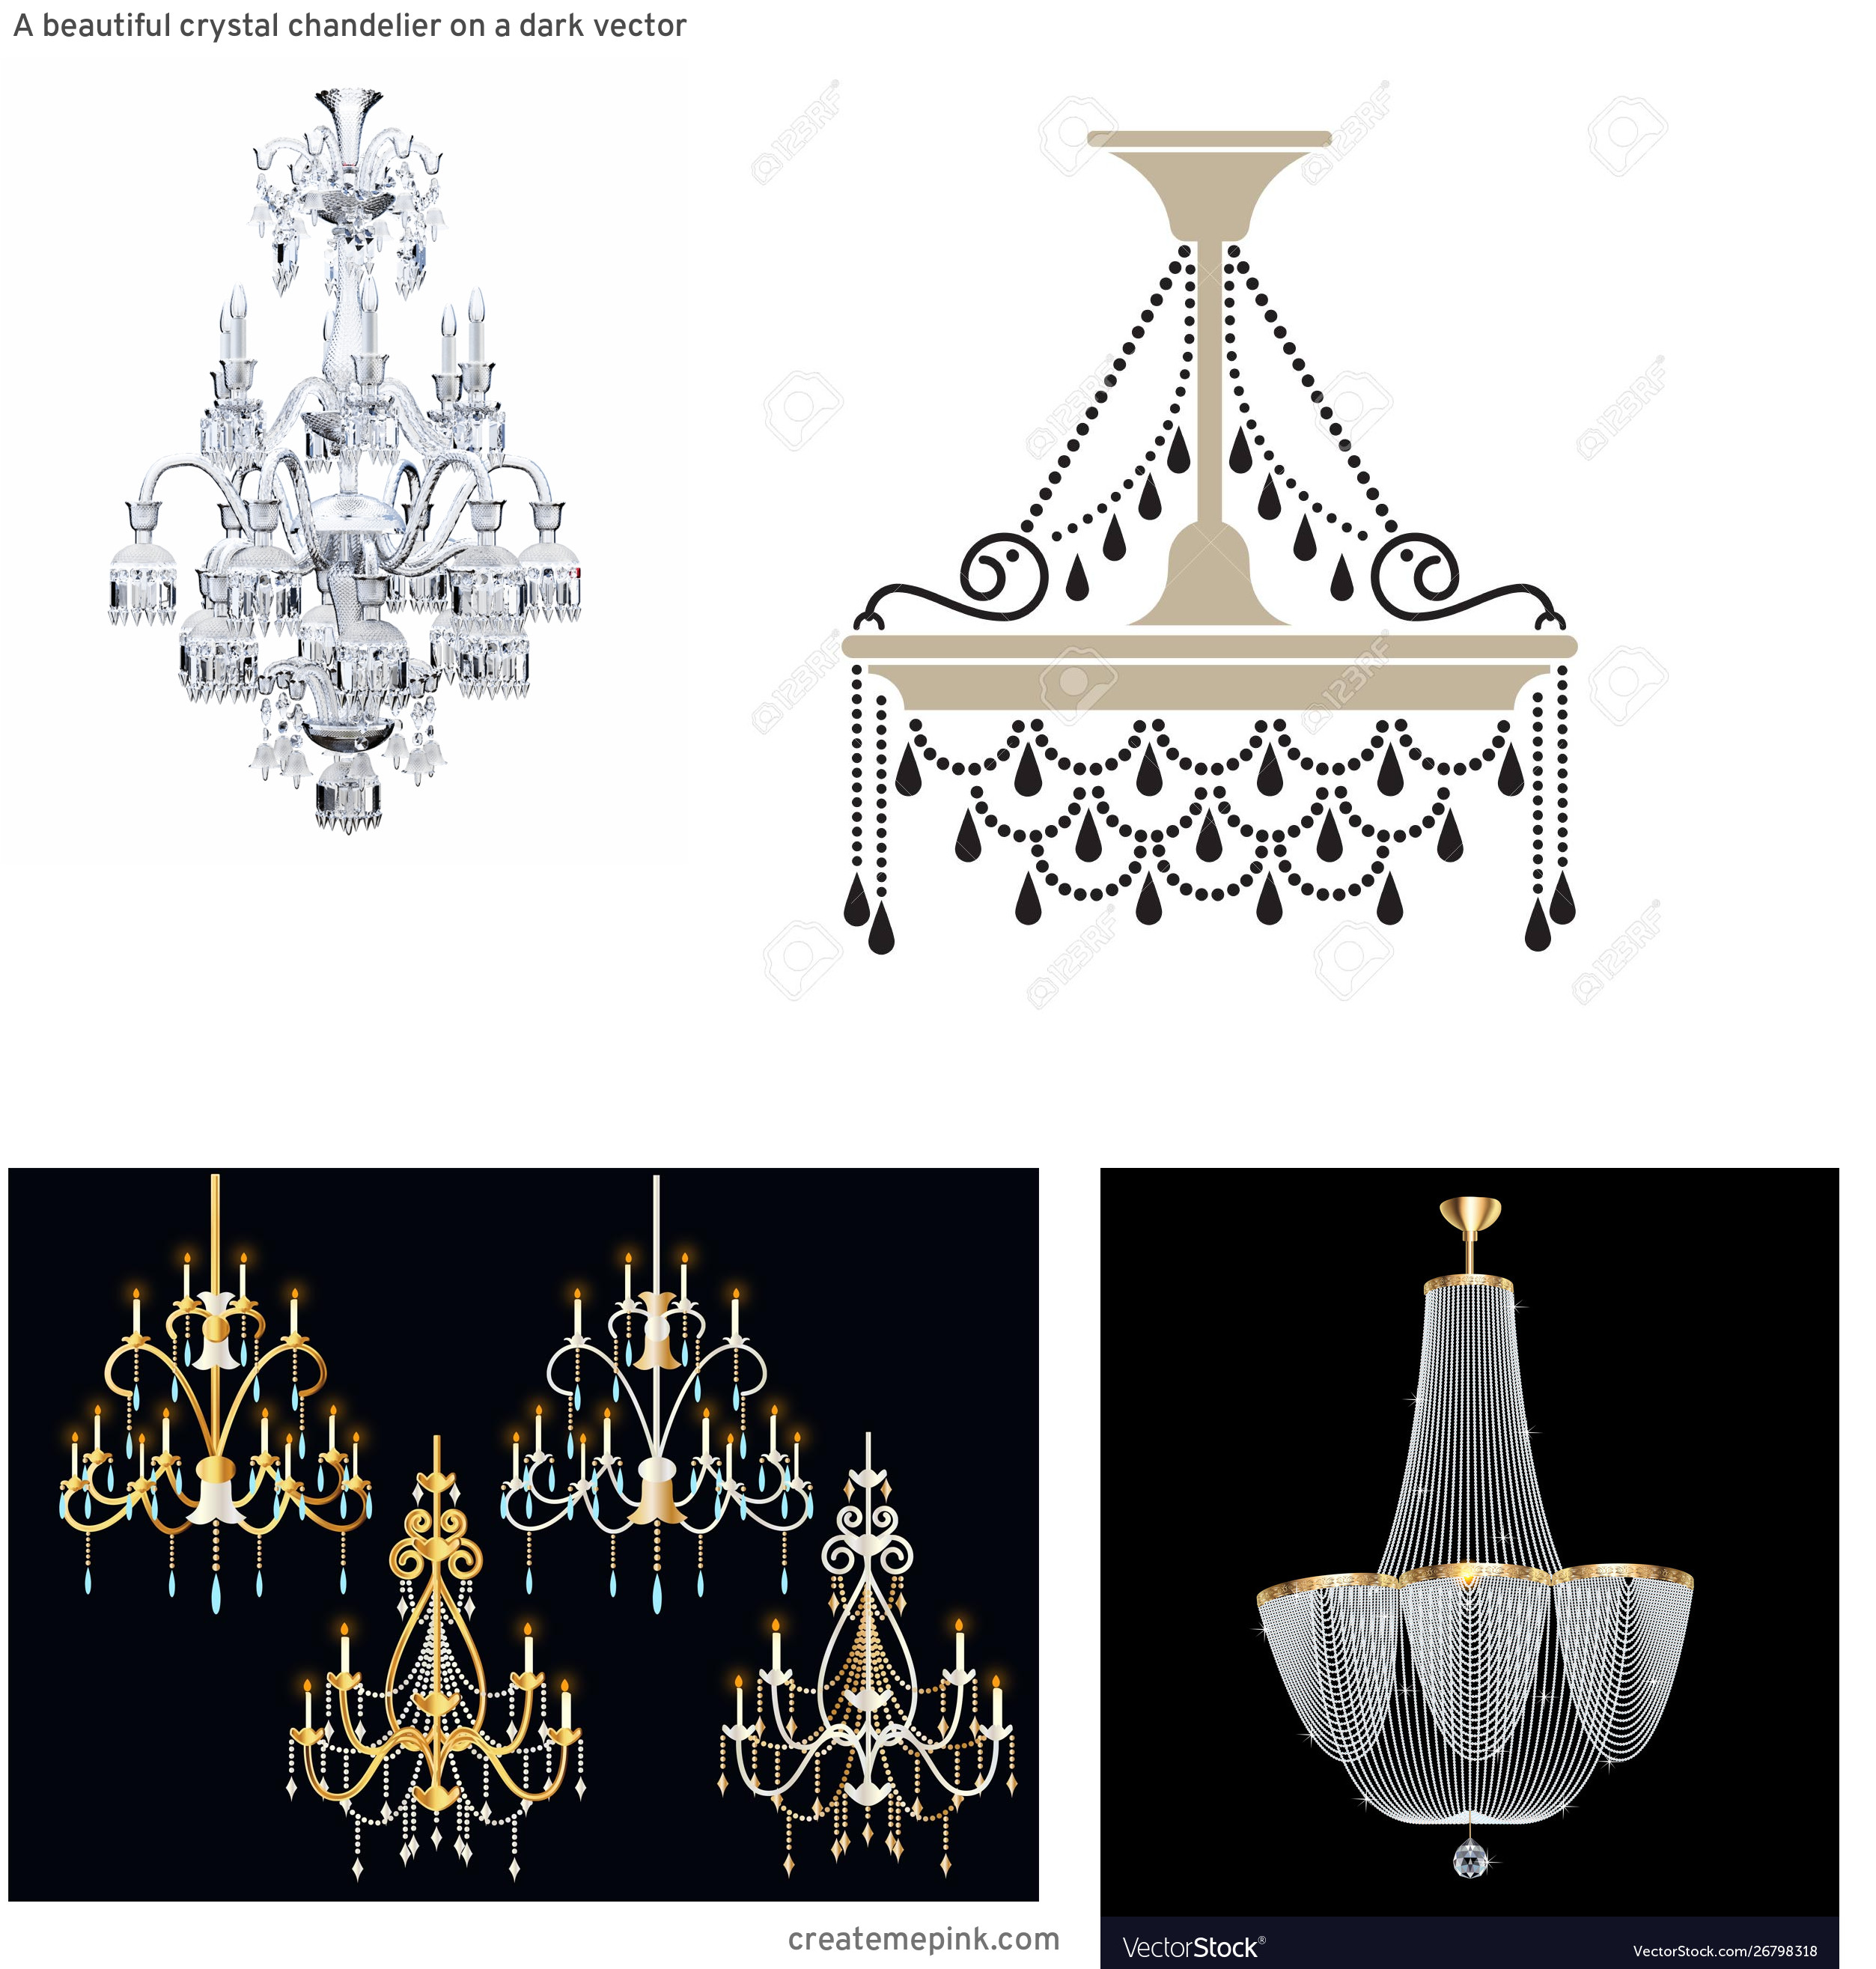 Vector Crystal Chandelier: A Beautiful Crystal Chandelier On A Dark Vector